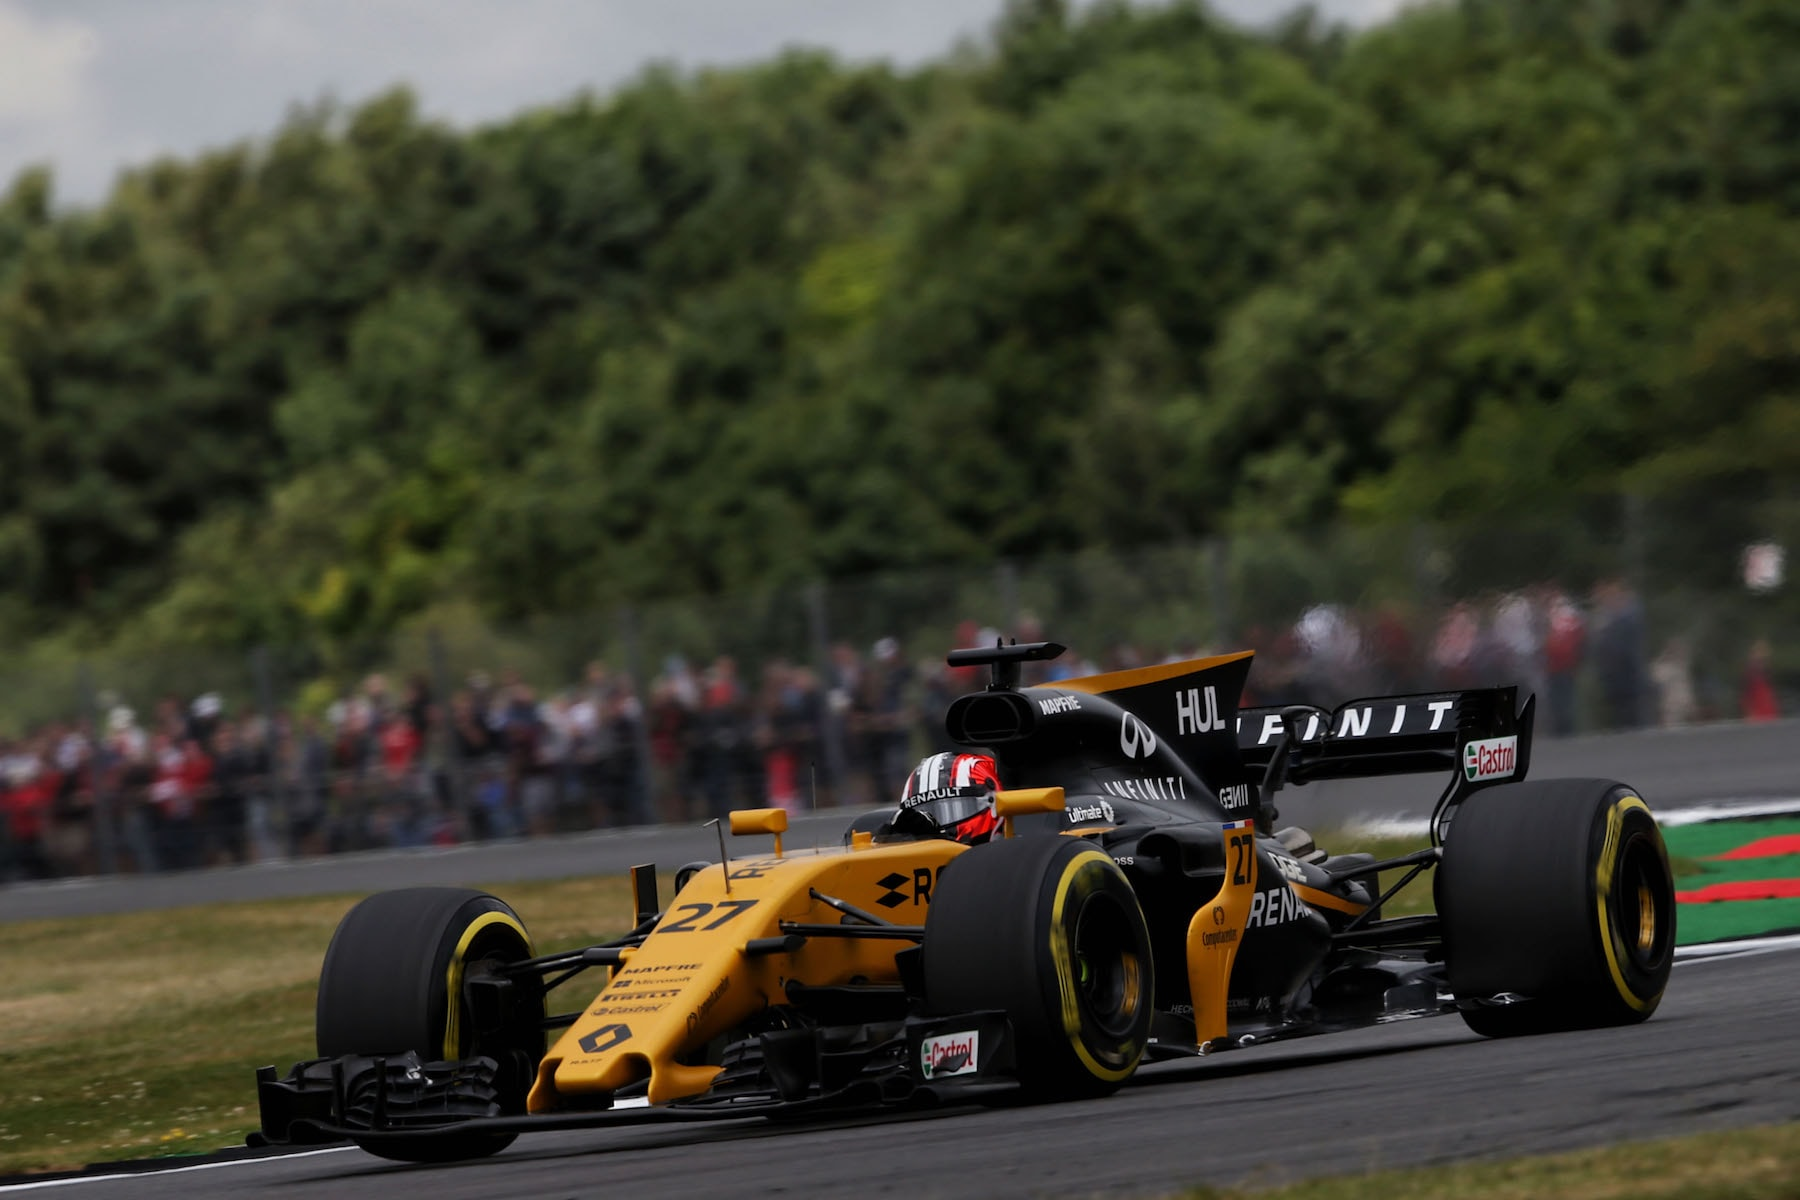 2017 Nico Hulkenberg | Renault RS17 | 2017 British GP FP2 2 copy.jpg